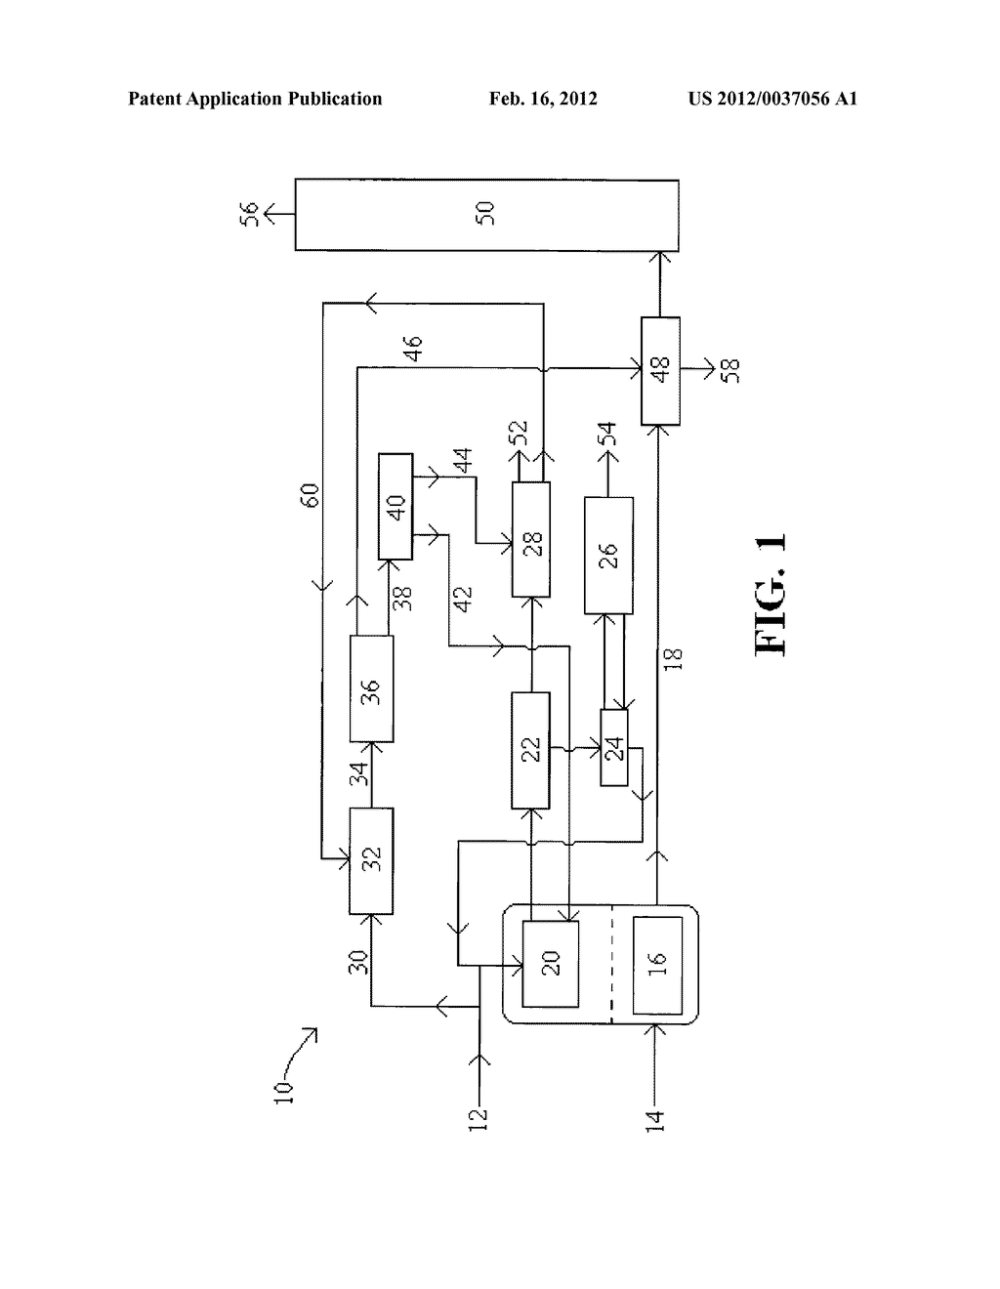 medium resolution of process for operating a fossil fuel fired power plant diagram schematic and image 02